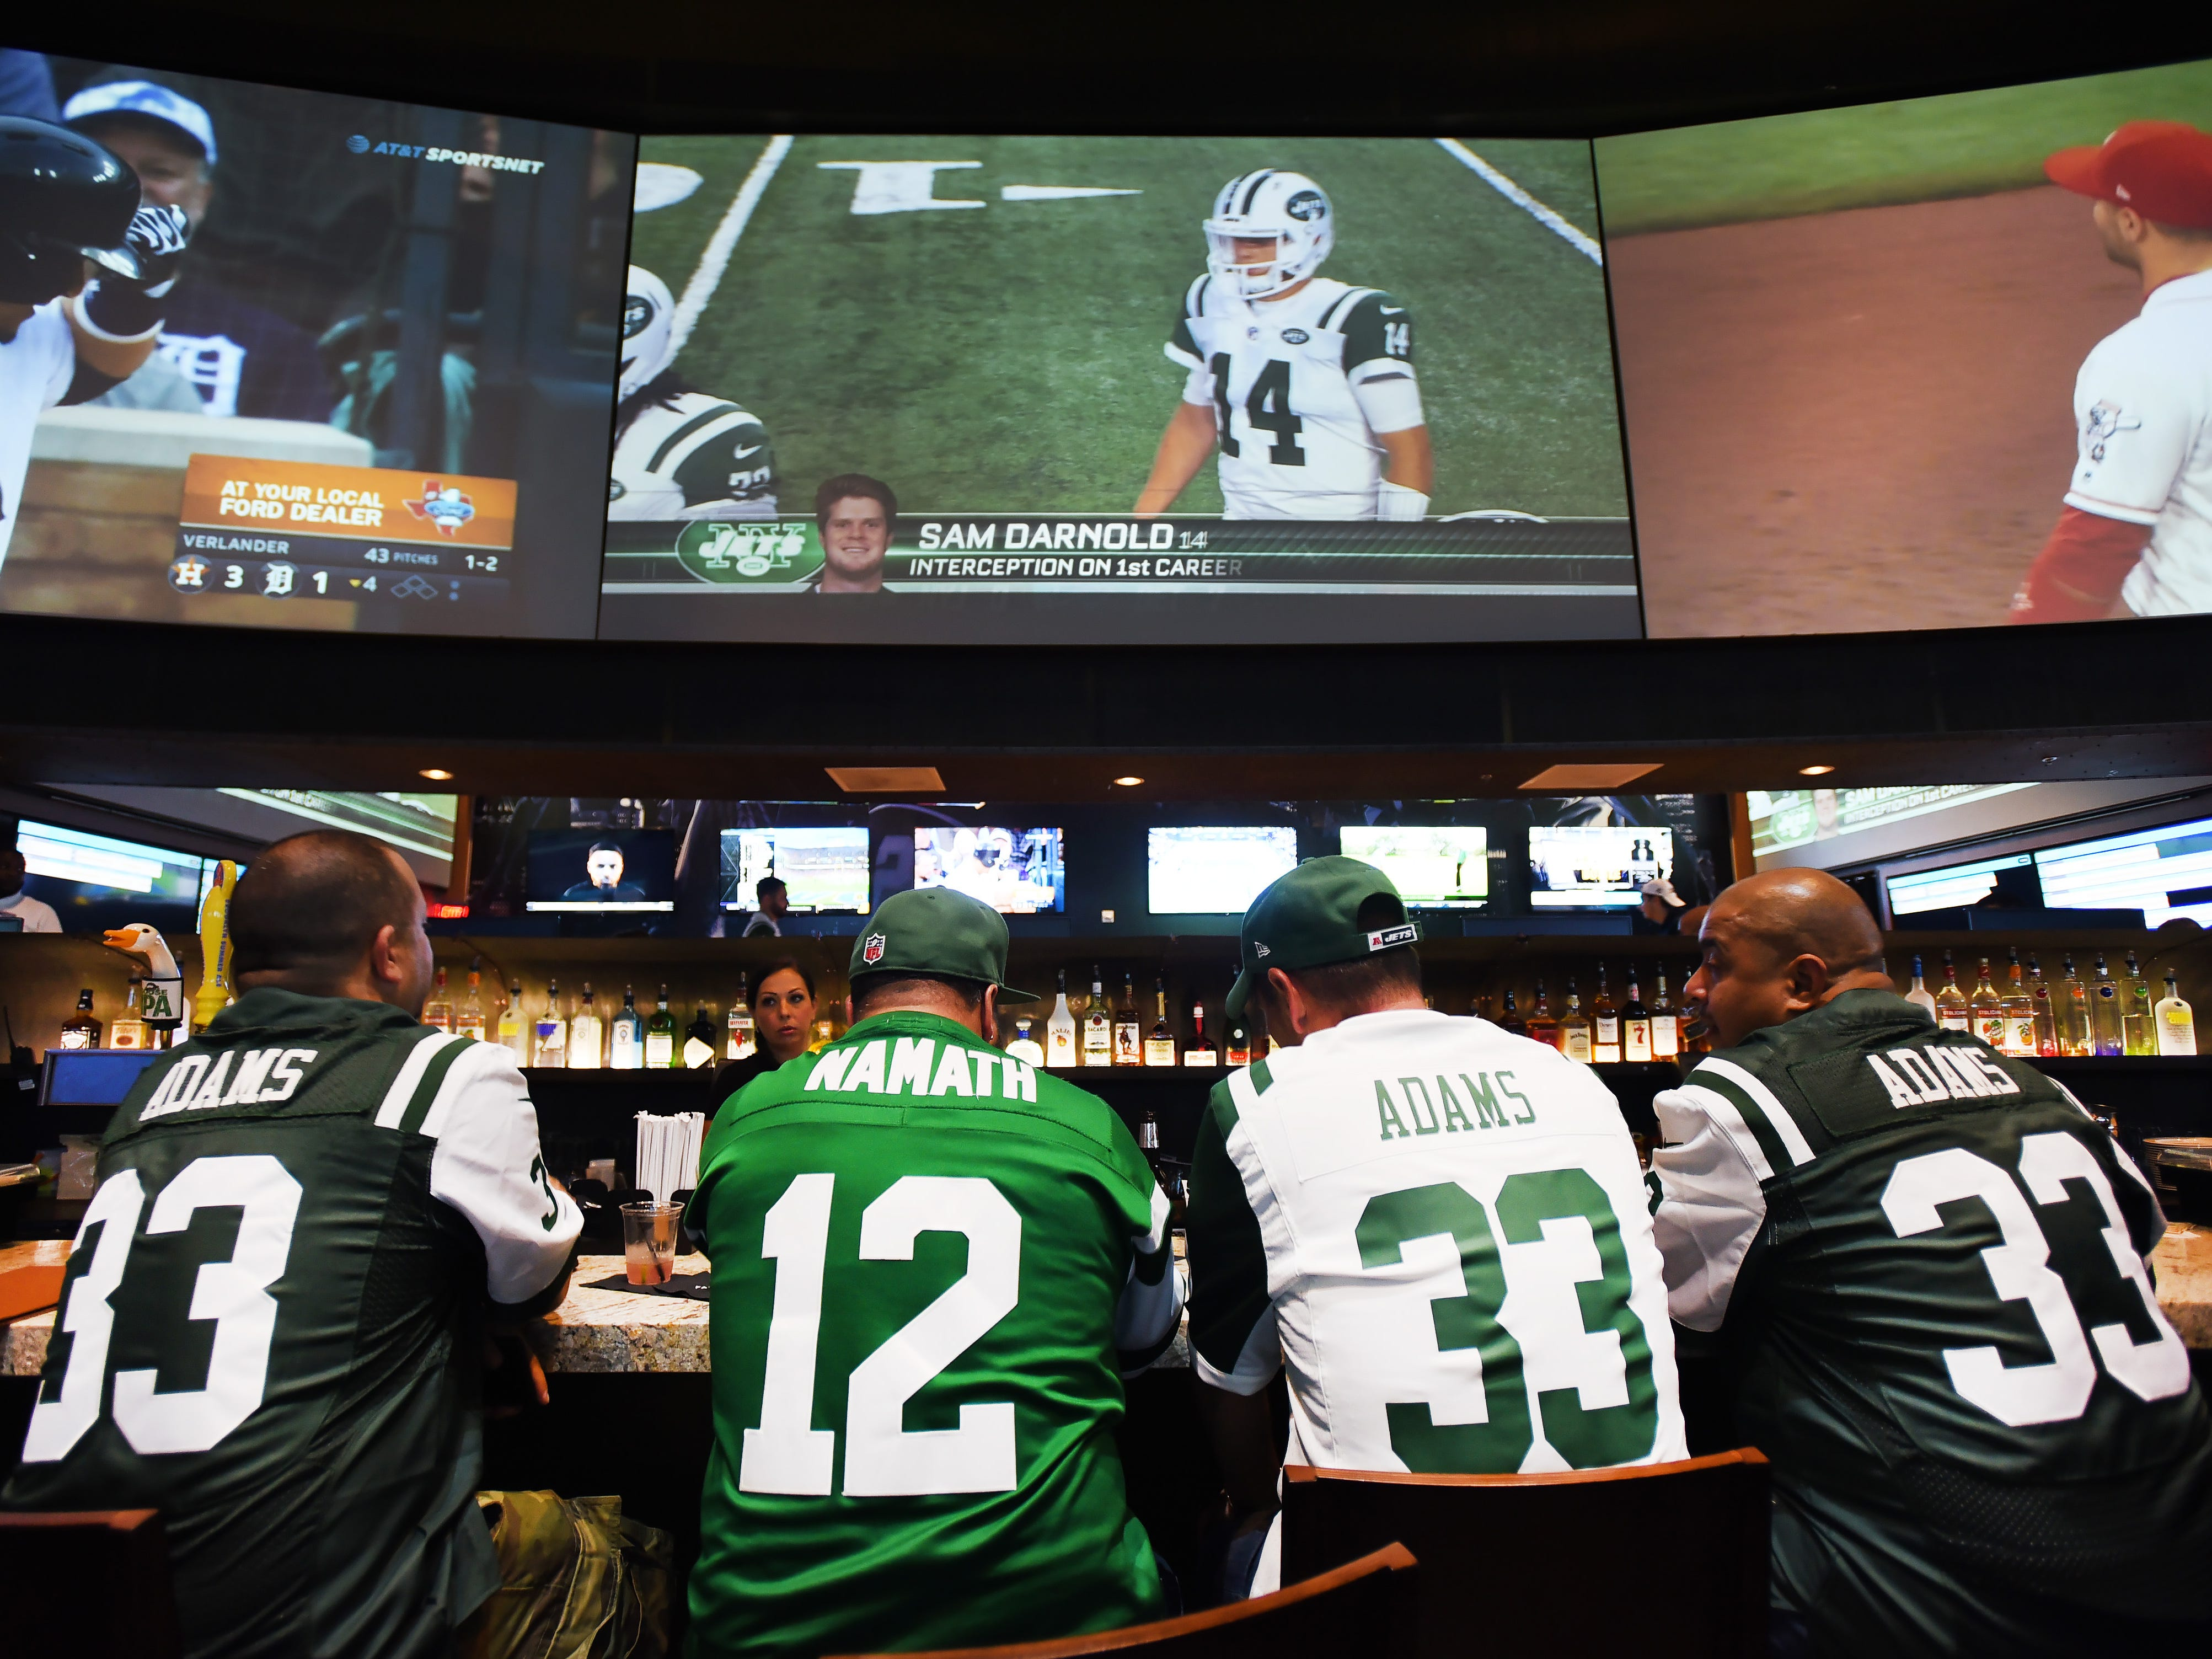 Fans watch the game on large screens during a Jets game viewing party for fans at the FanDuel Sportsbook, located at Meadowlands Racing & Entertainment area in East Rutherford on 09/10/18.